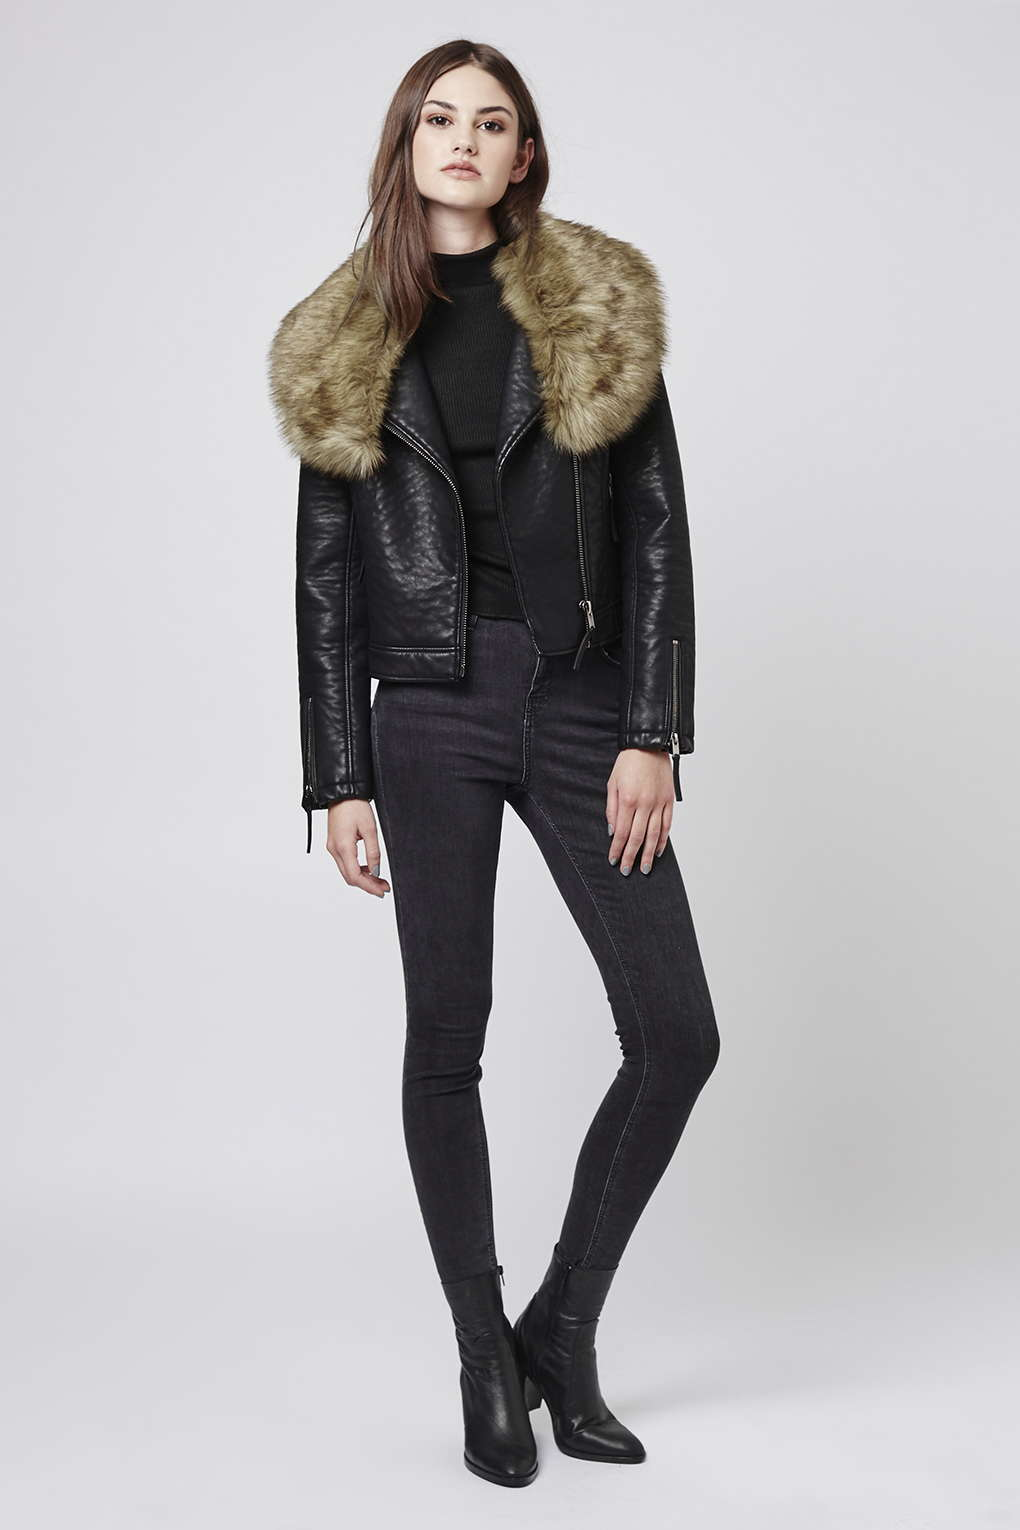 Topshop Faux Fur Shawl Biker Jacket